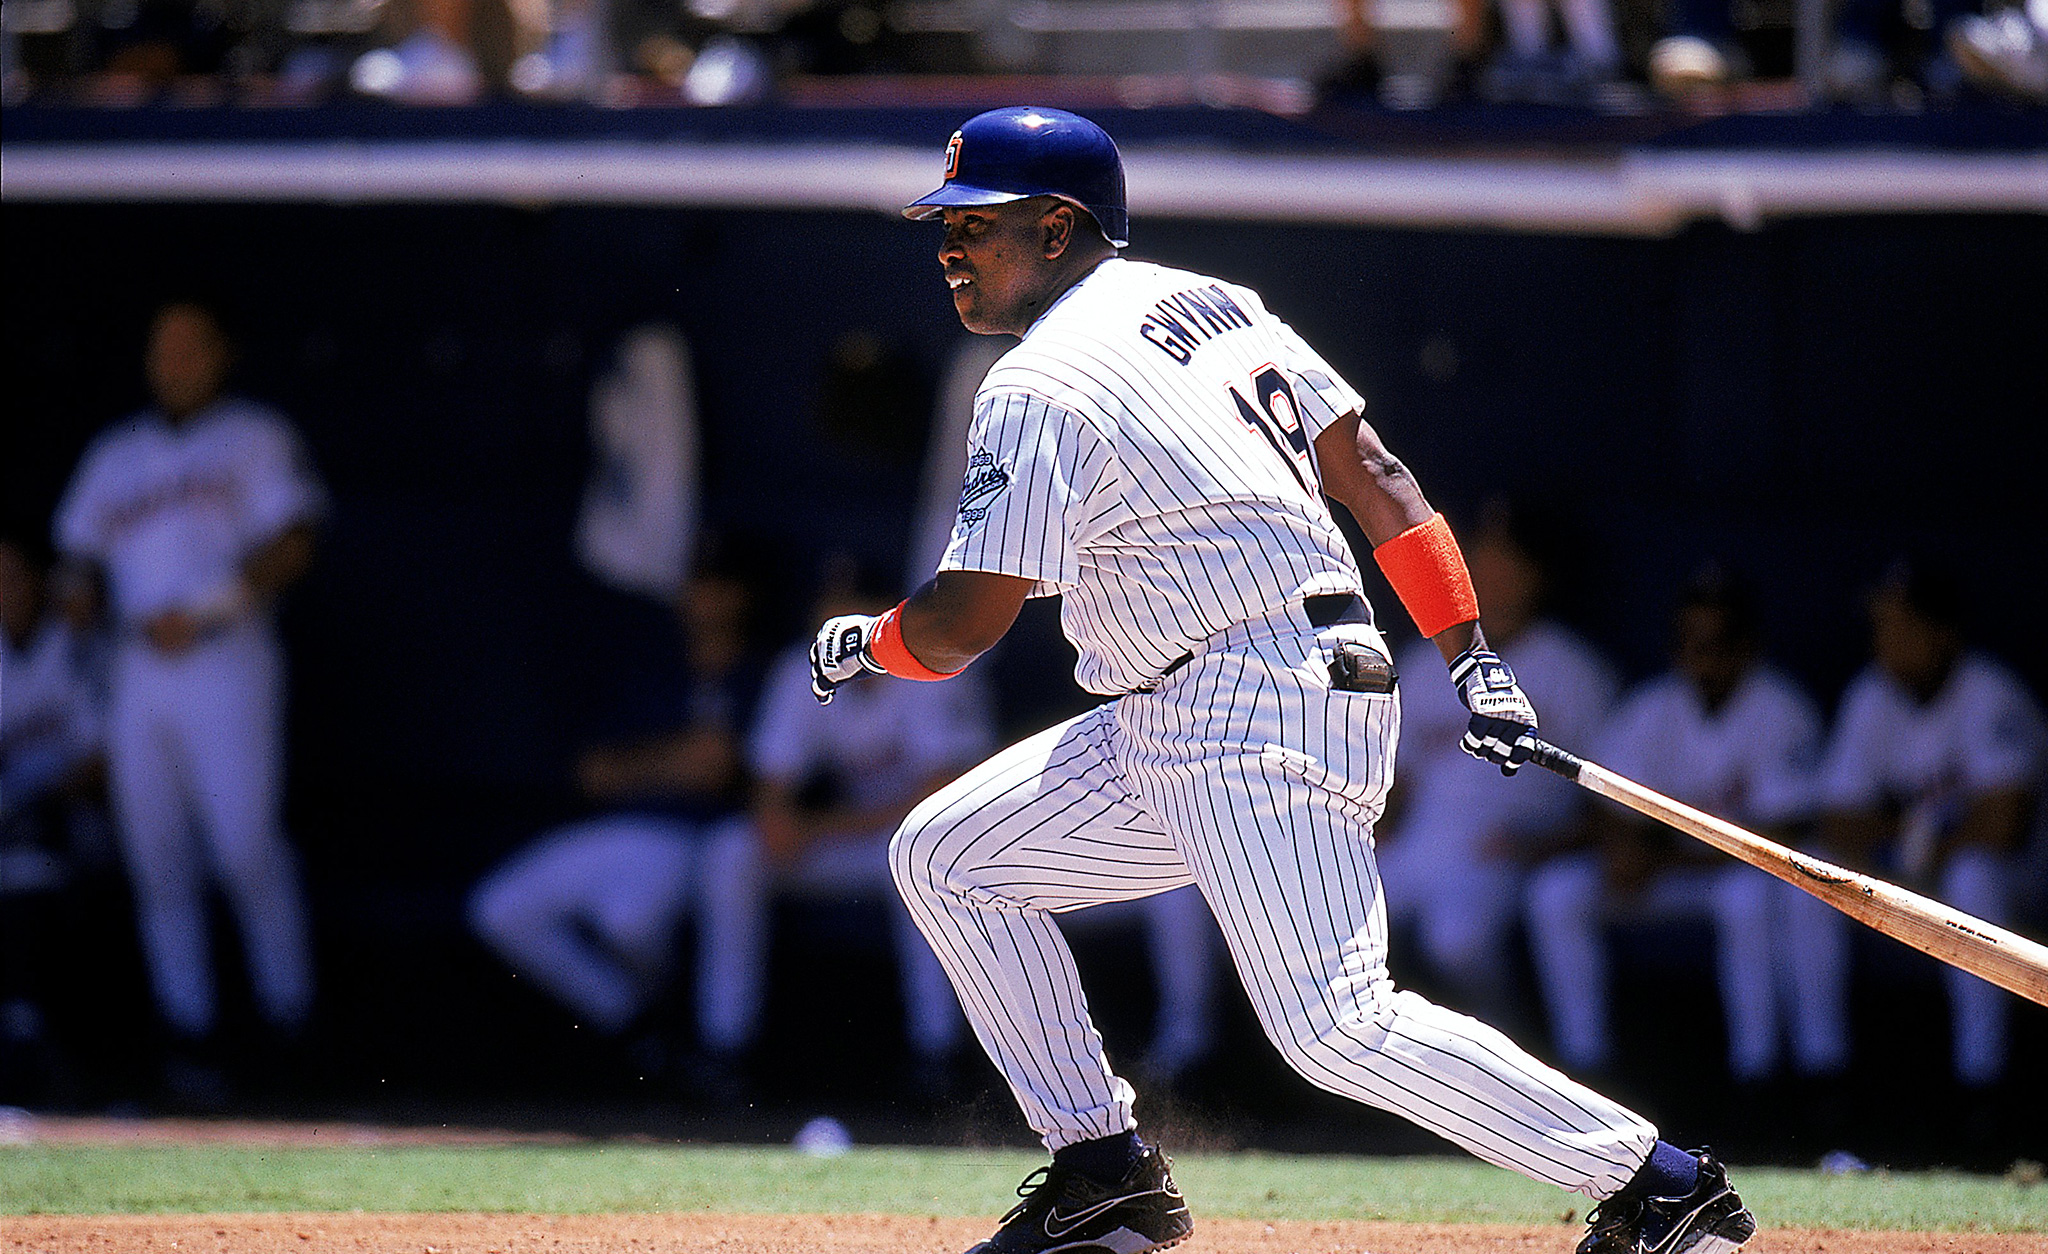 Best Hitter For Average: Tony Gwynn